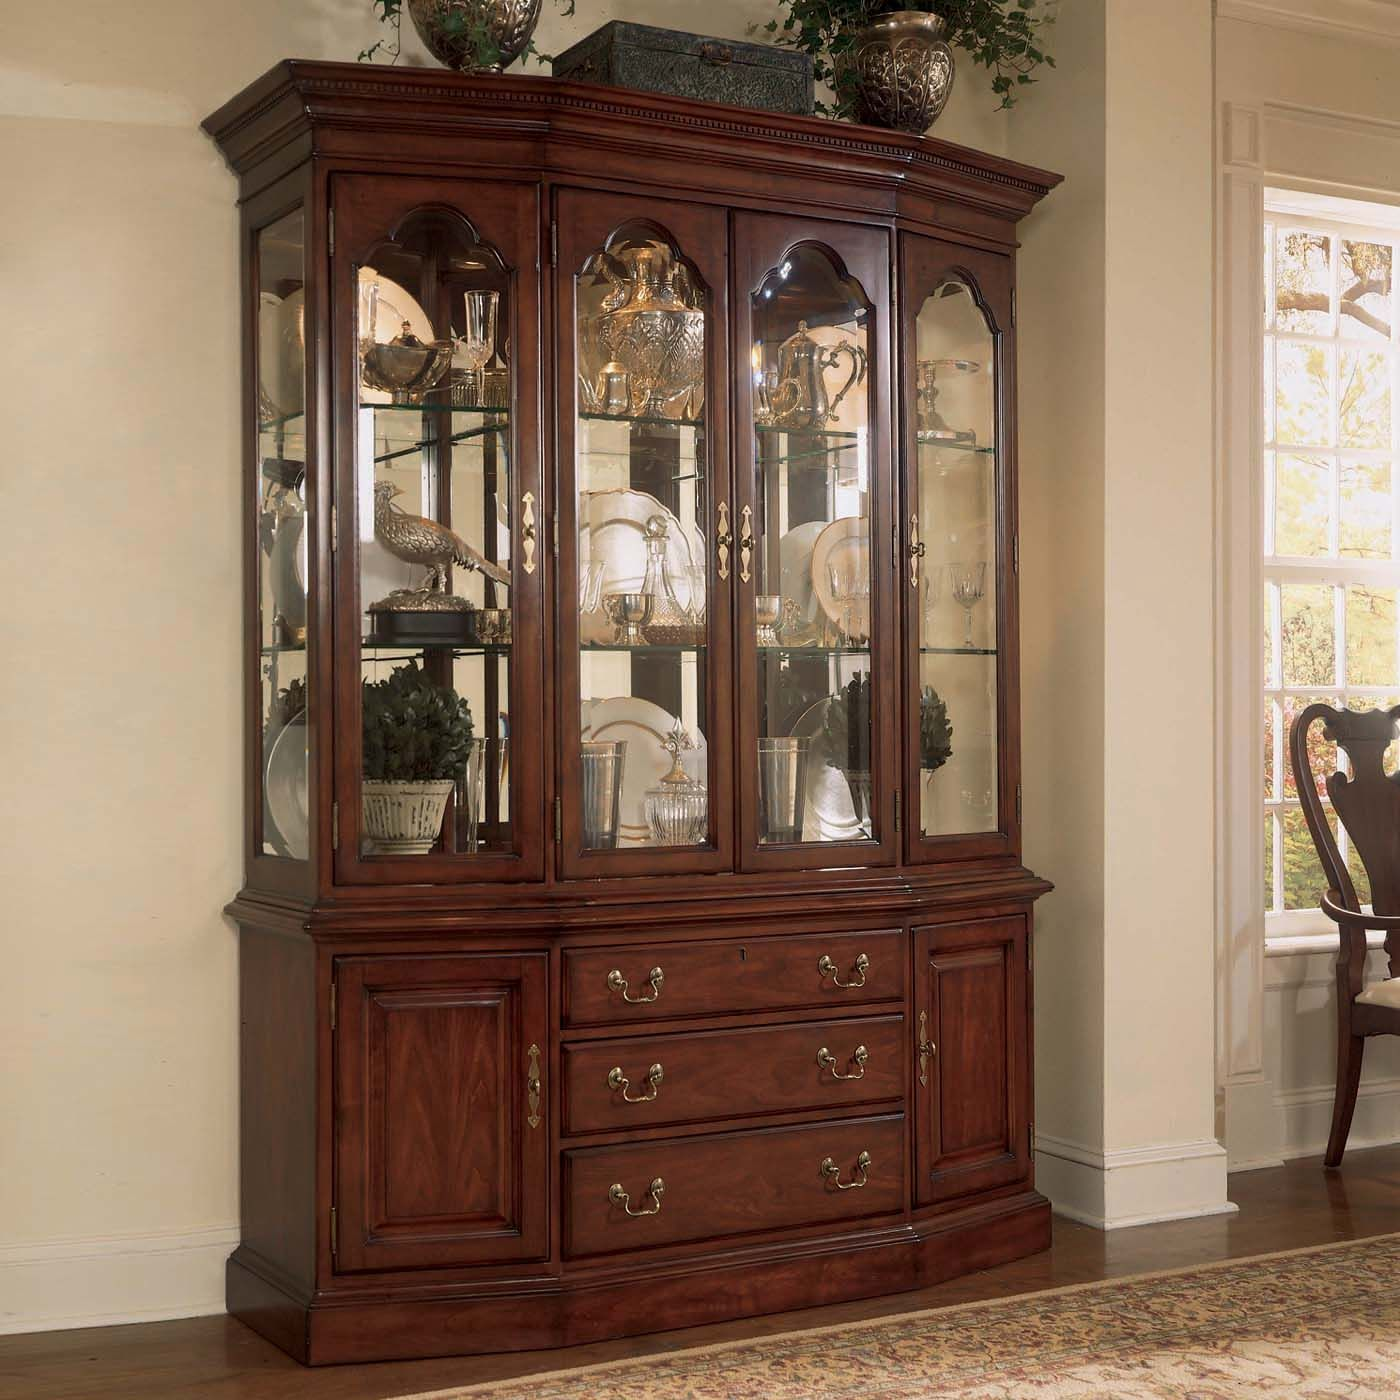 American Drew Cherry Grove Canted China Cabinet Furniture Dreams